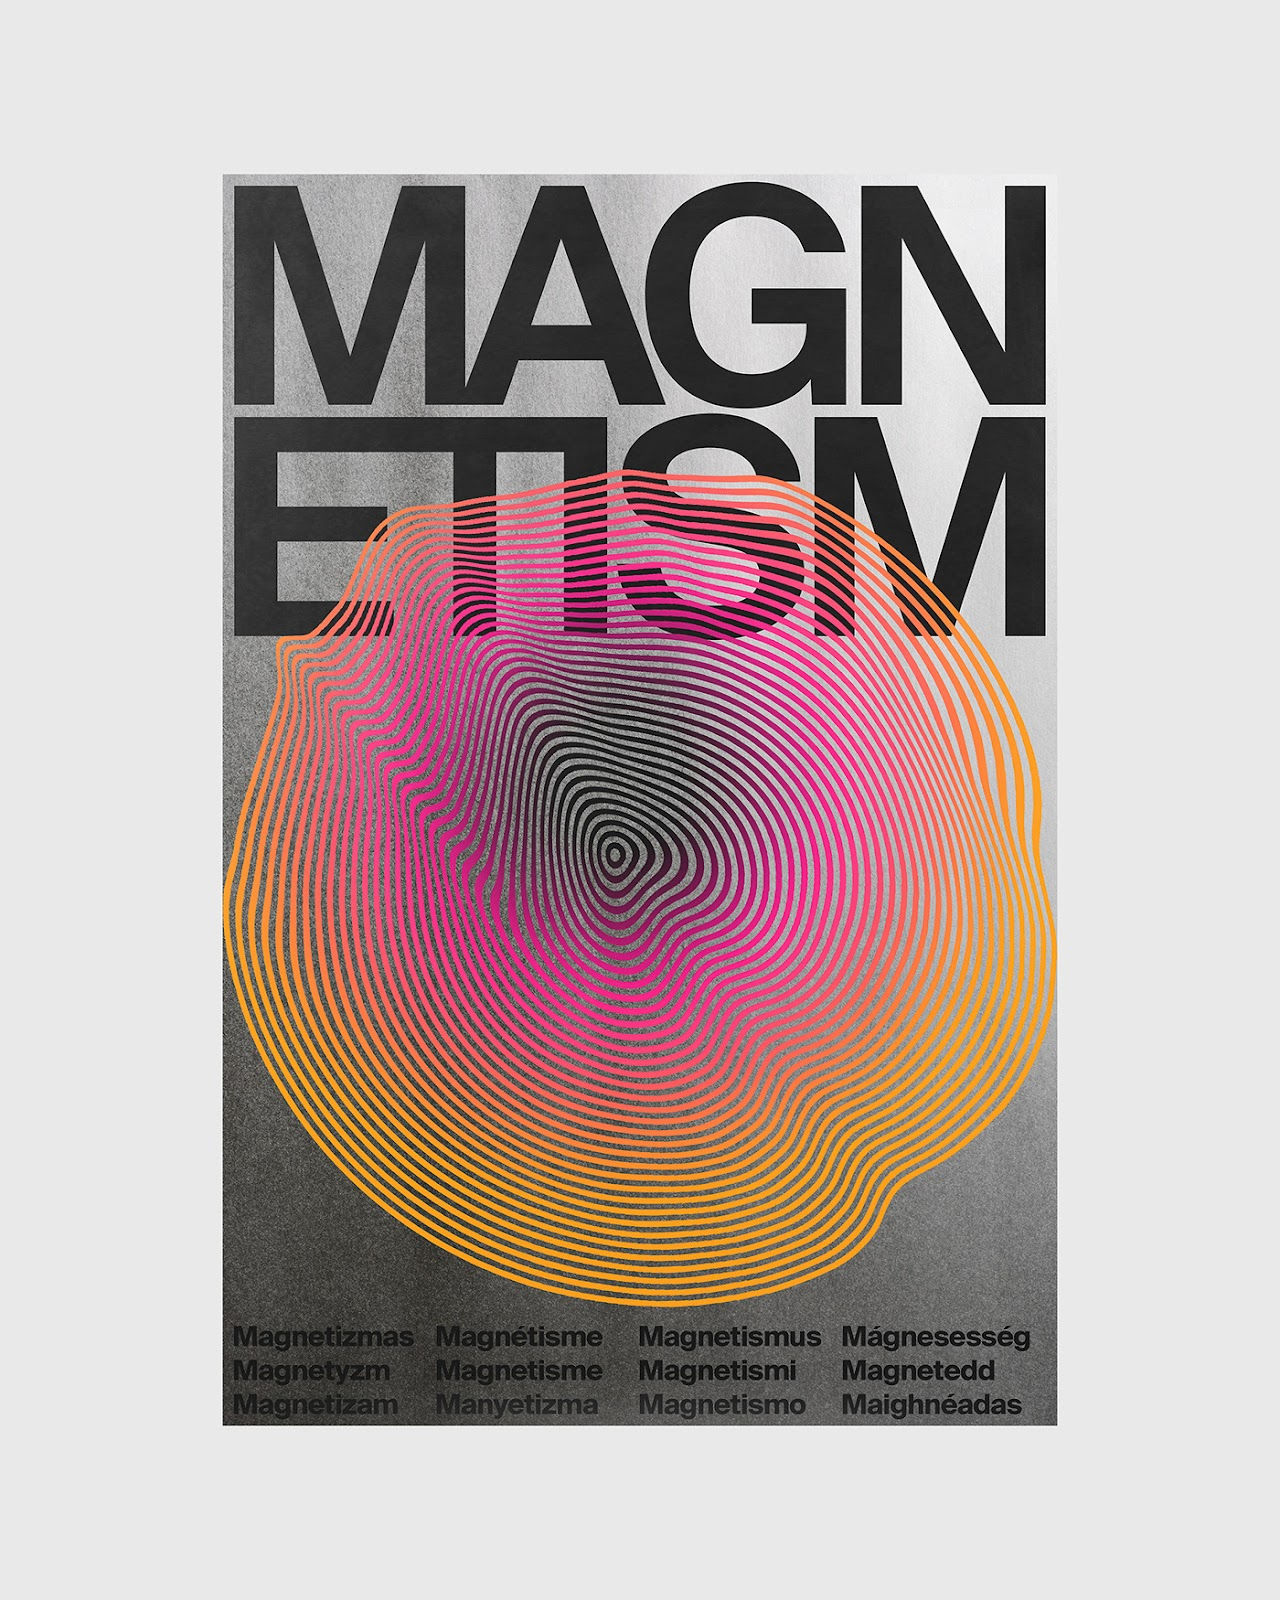 Magnetism poster by Xtian Miller